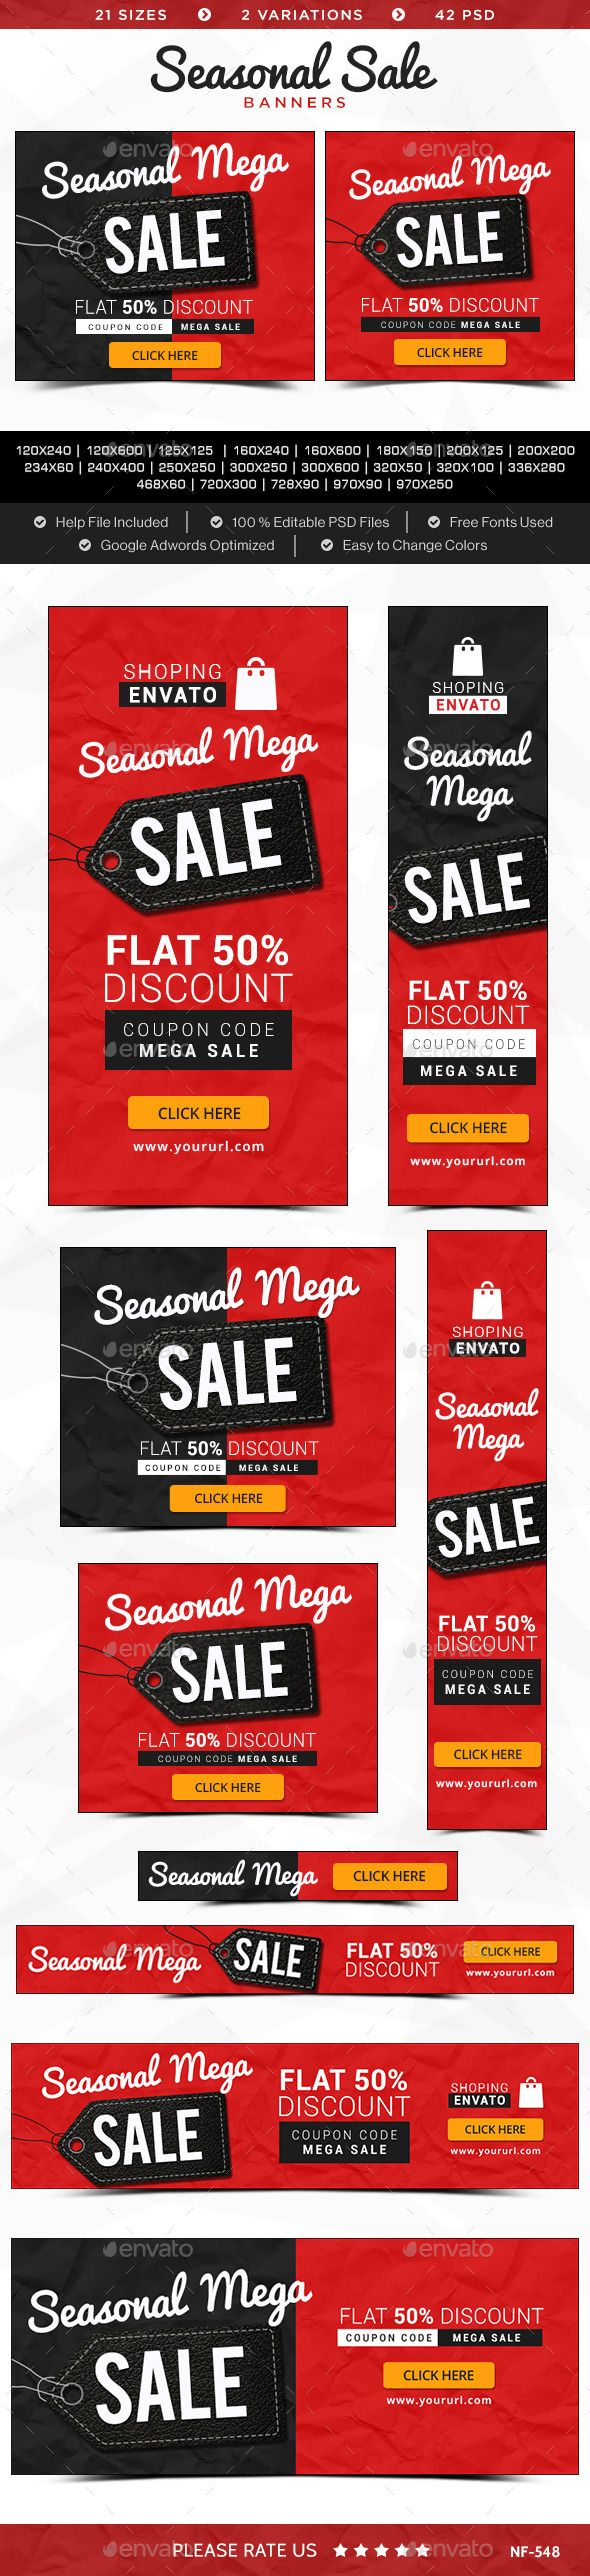 Seasonal Sale Banners Template #design #ads Download: http://graphicriver.net/item/seasonal-sale-banners/12335742?ref=ksioks